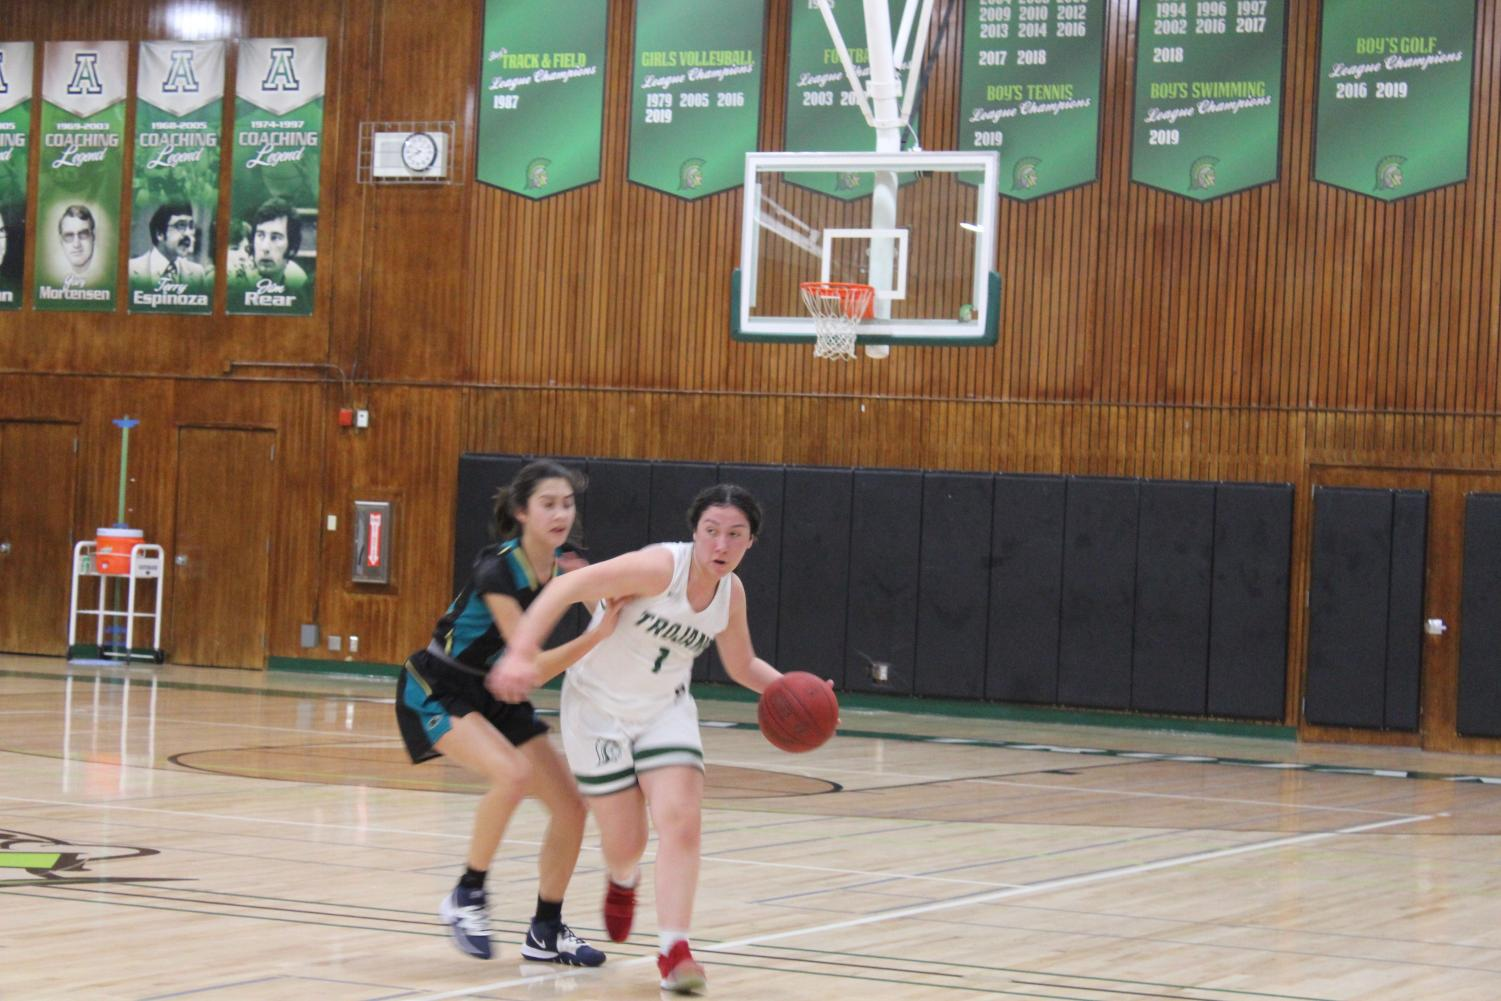 Briana Mejia drives to the basket against Christopher in the Trojans' 54-47 victory on 1/28/2020. The victory put the team firmly in first place at 5-0.